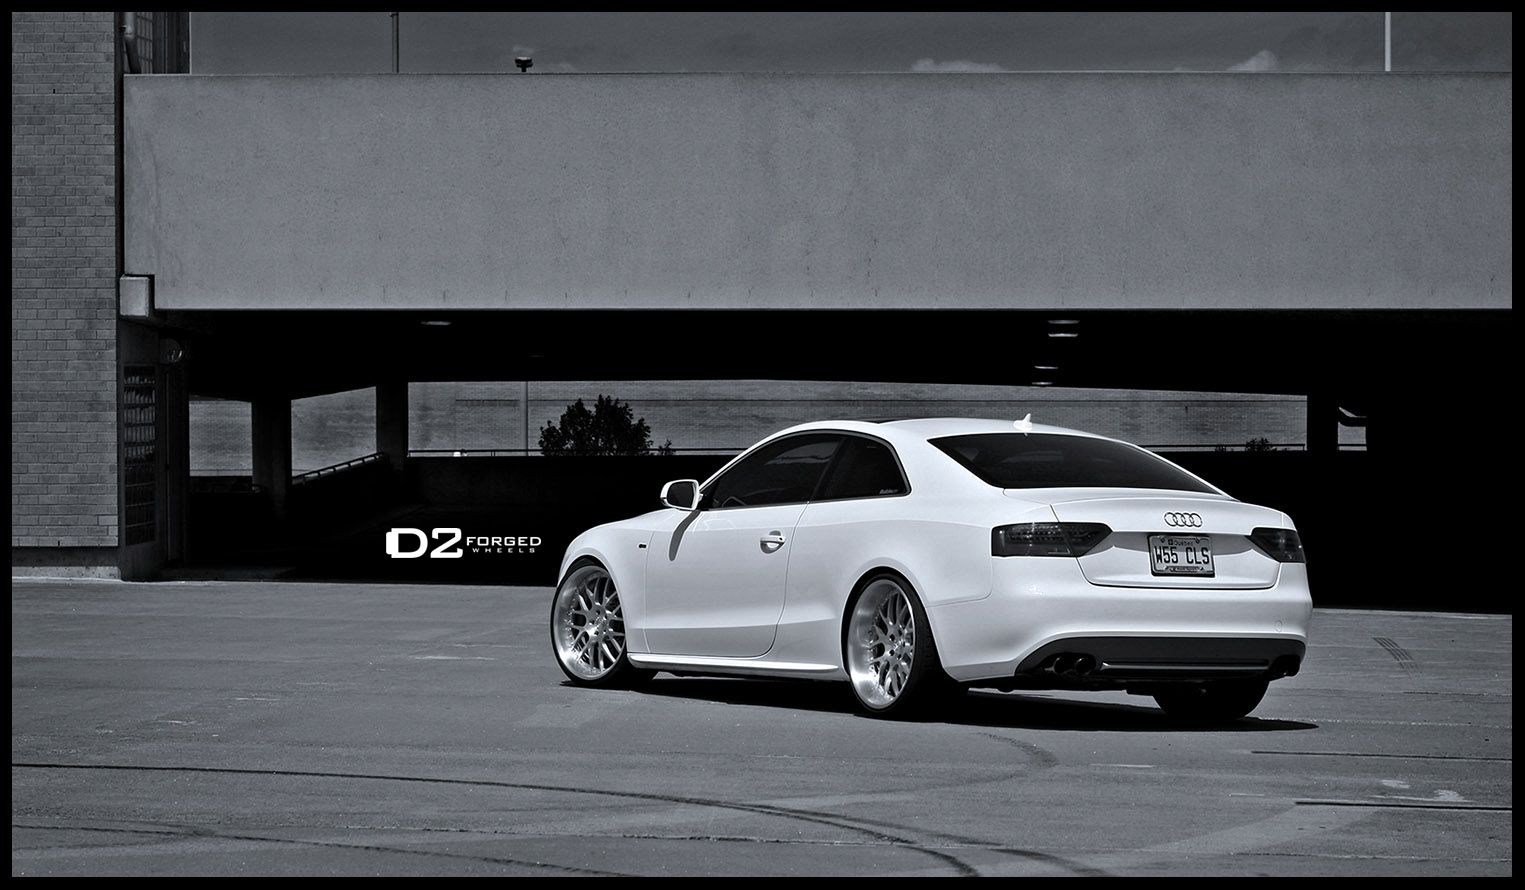 2012 Audi A5 S Line D2forged Vs1 Wheels 05 Audi Tuning Mag